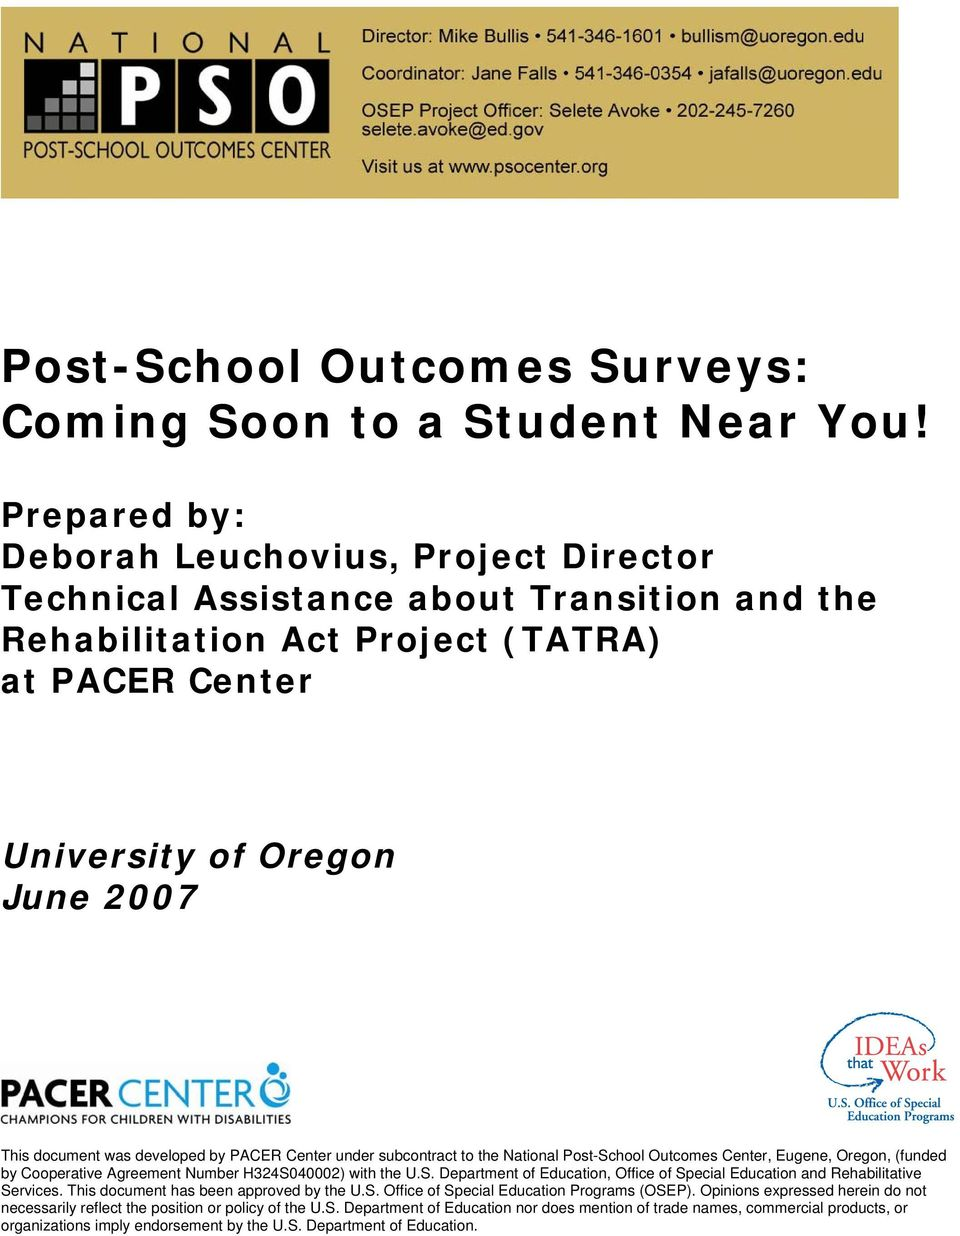 developed by PACER Center under subcontract to the National Post-School Outcomes Center, Eugene, Oregon, (funded by Cooperative Agreement Number H324S040002) with the U.S. Department of Education, Office of Special Education and Rehabilitative Services.